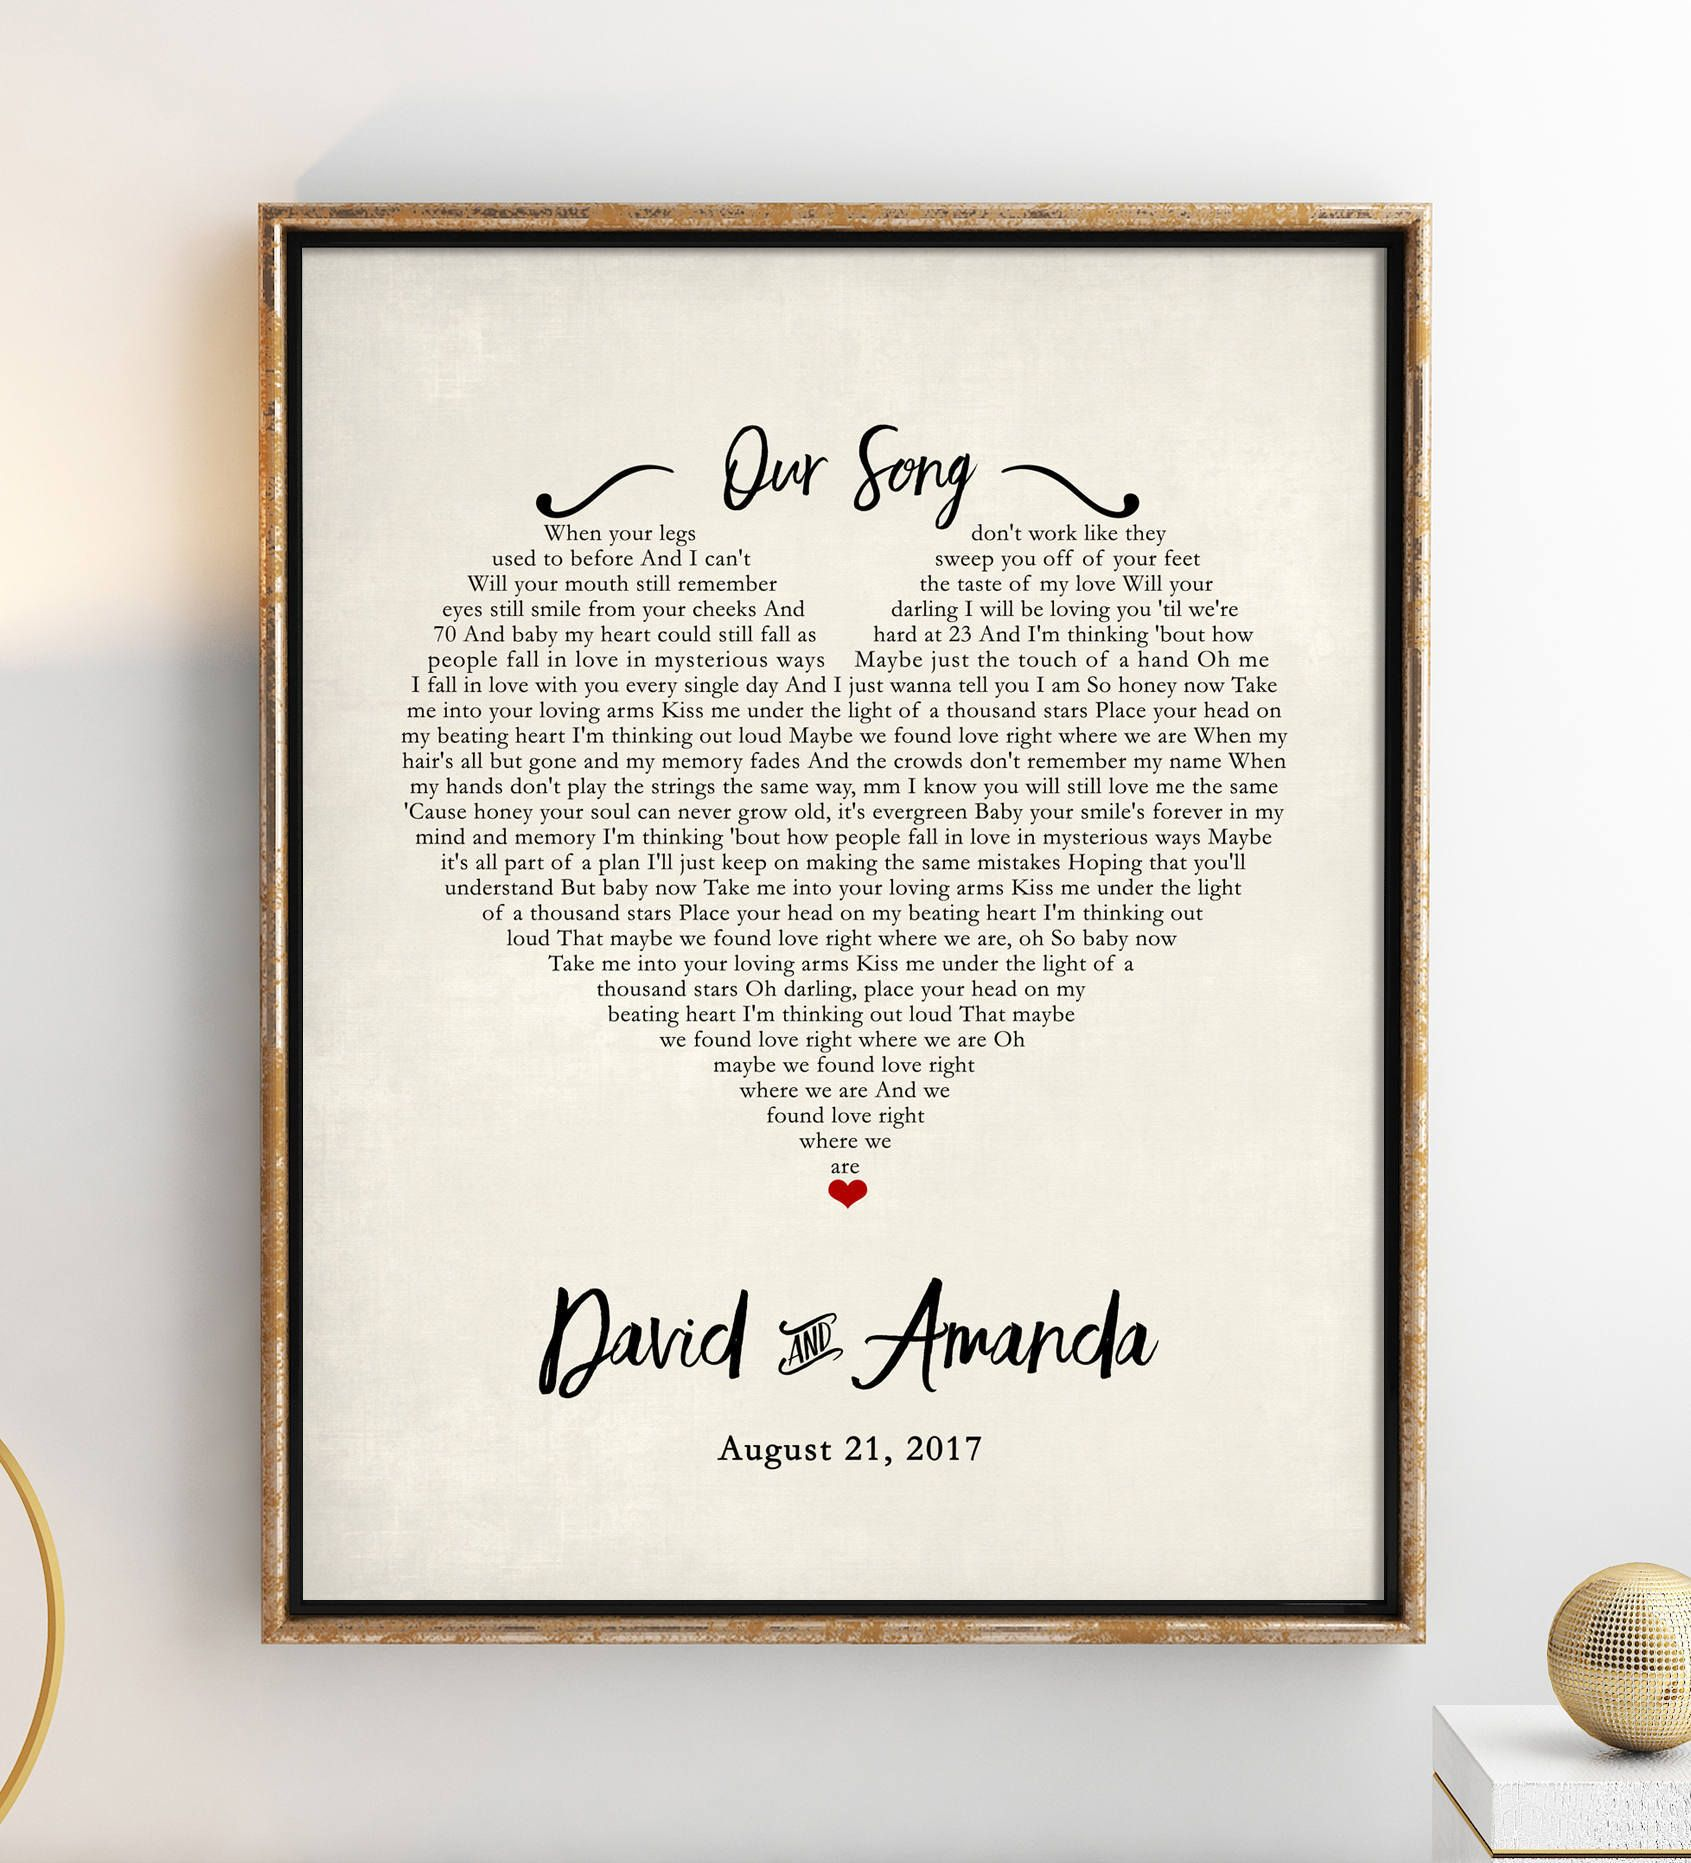 Wedding Song Lyric Art Unique Wedding Gift for Couple Valentines Day Gift for Him Song Lyrics Personalized Engagement Gift For Couple